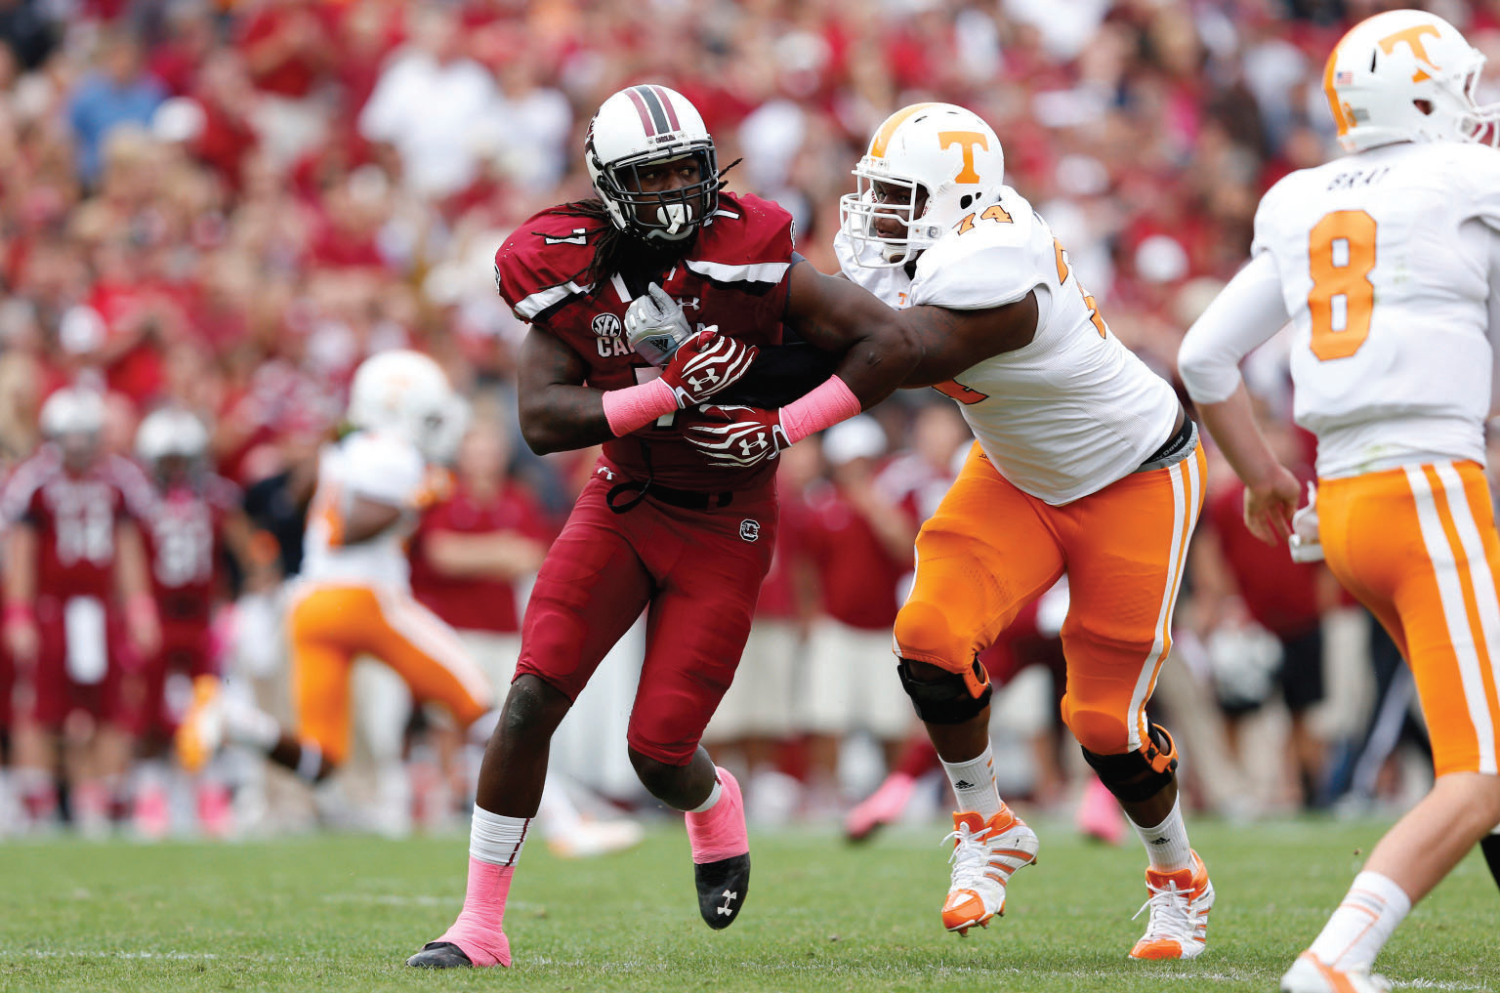 Who will be taken first overall in the 2014 NFL Draft?